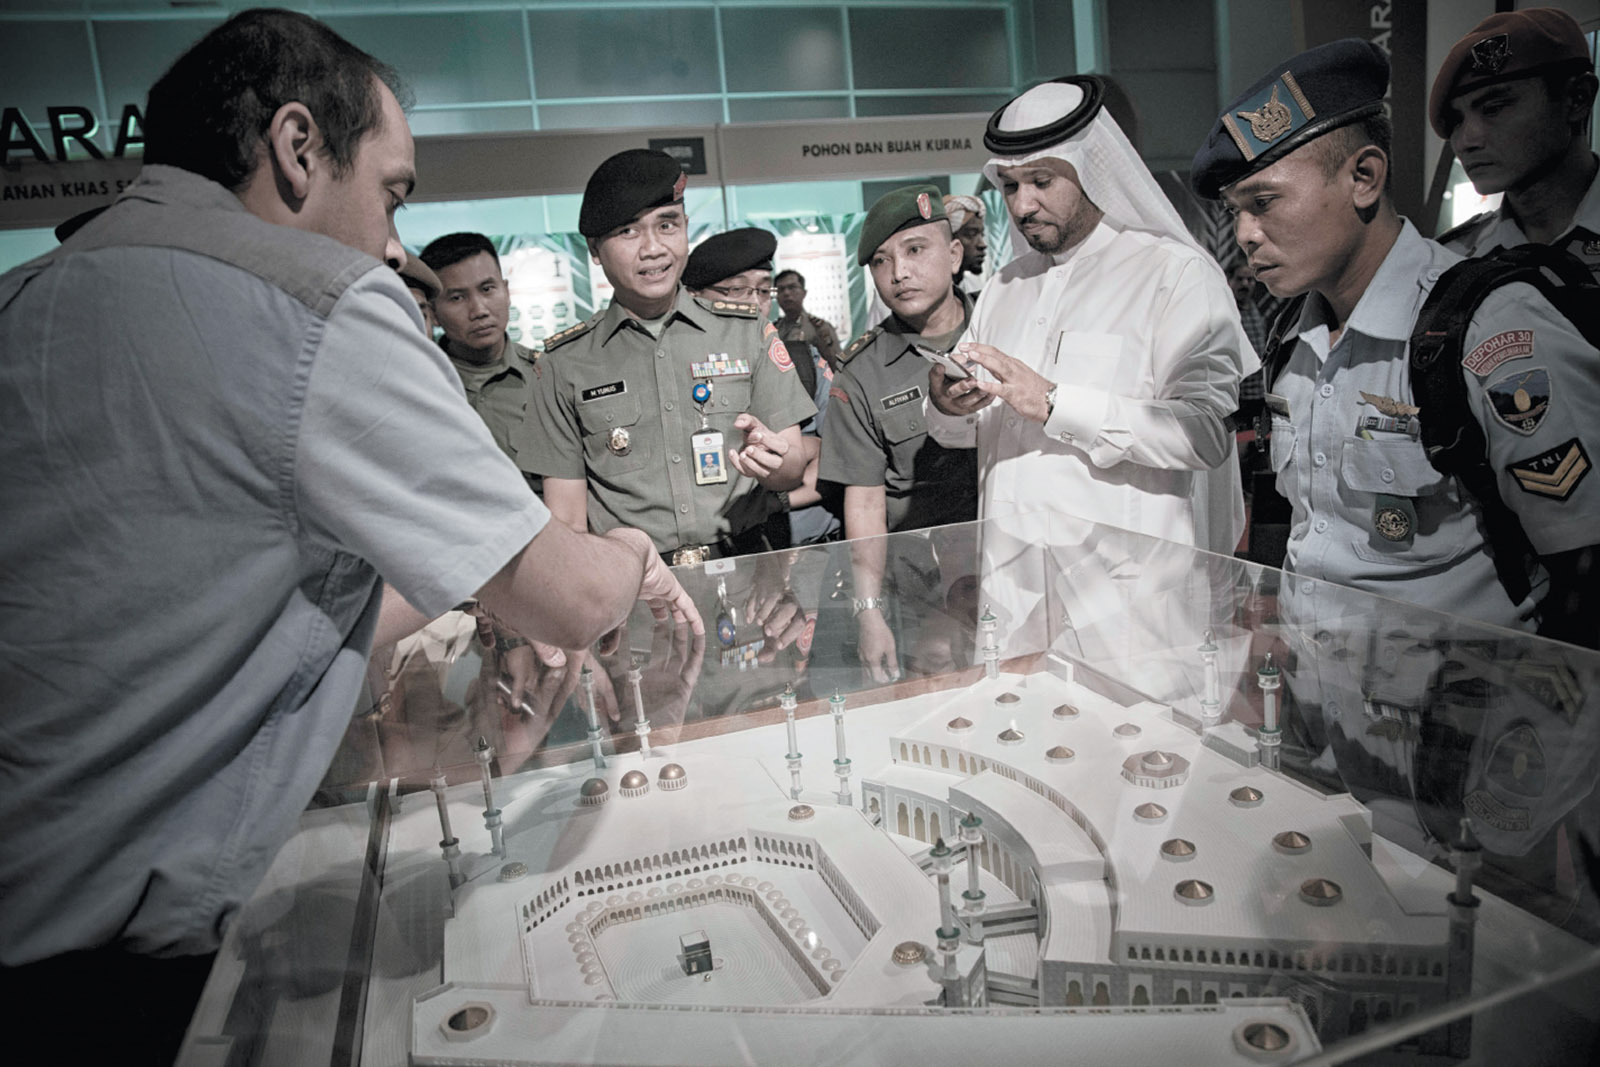 A Saudi official explaining a maquette of the mosque at Mecca to members of the Indonesian military at  a Saudi-sponsored festival in Jakarta, March 2016